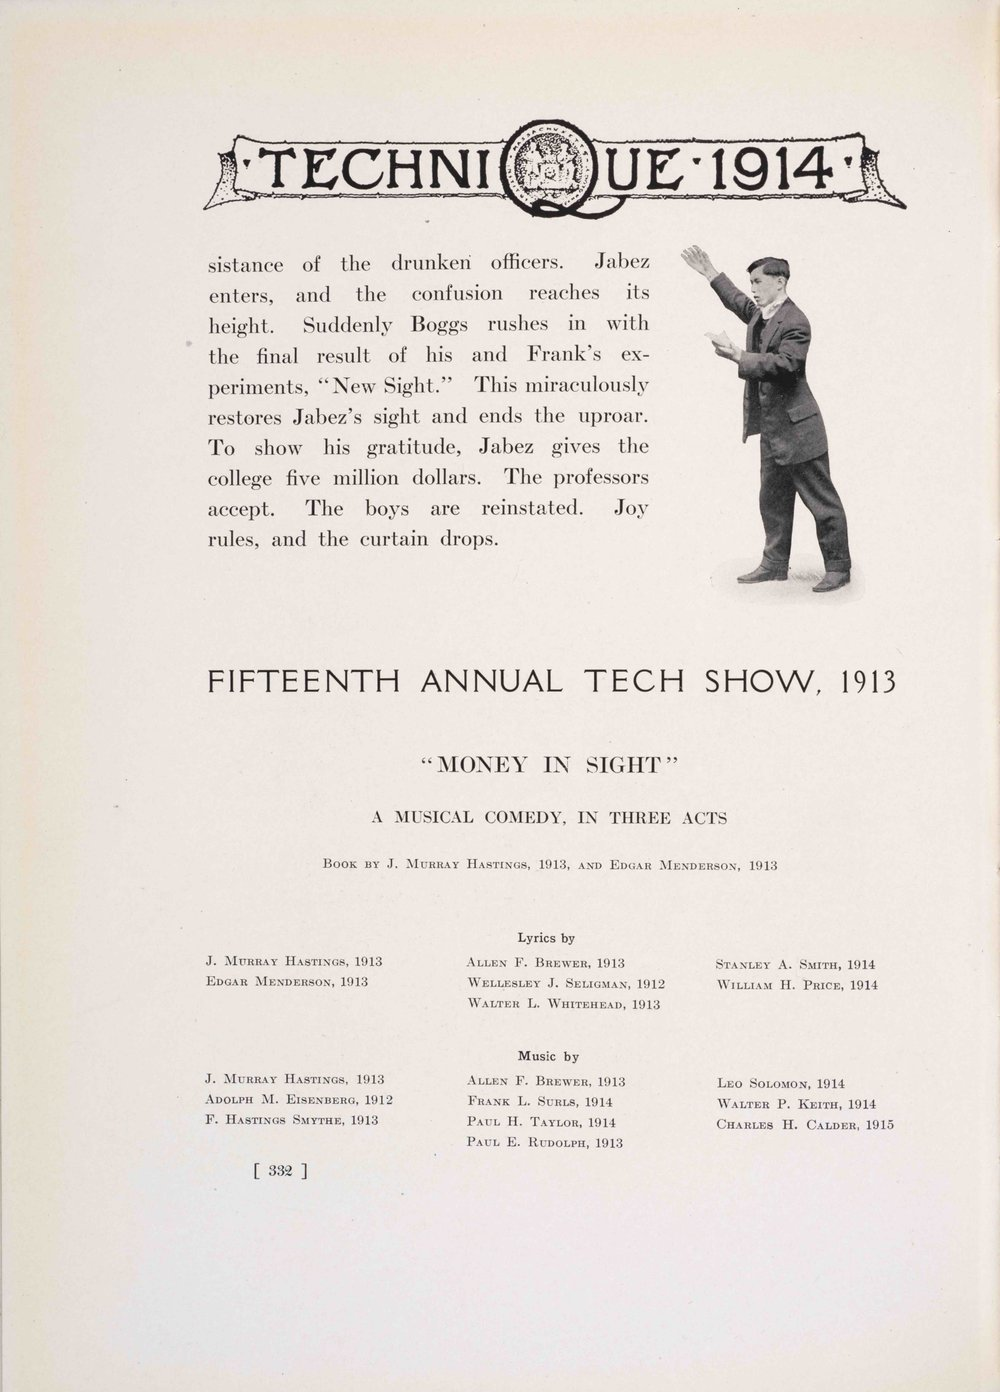 ZY Chow in Tech Show, 1913.  Technique  1914. Courtesy MIT Archives and Special Collections.